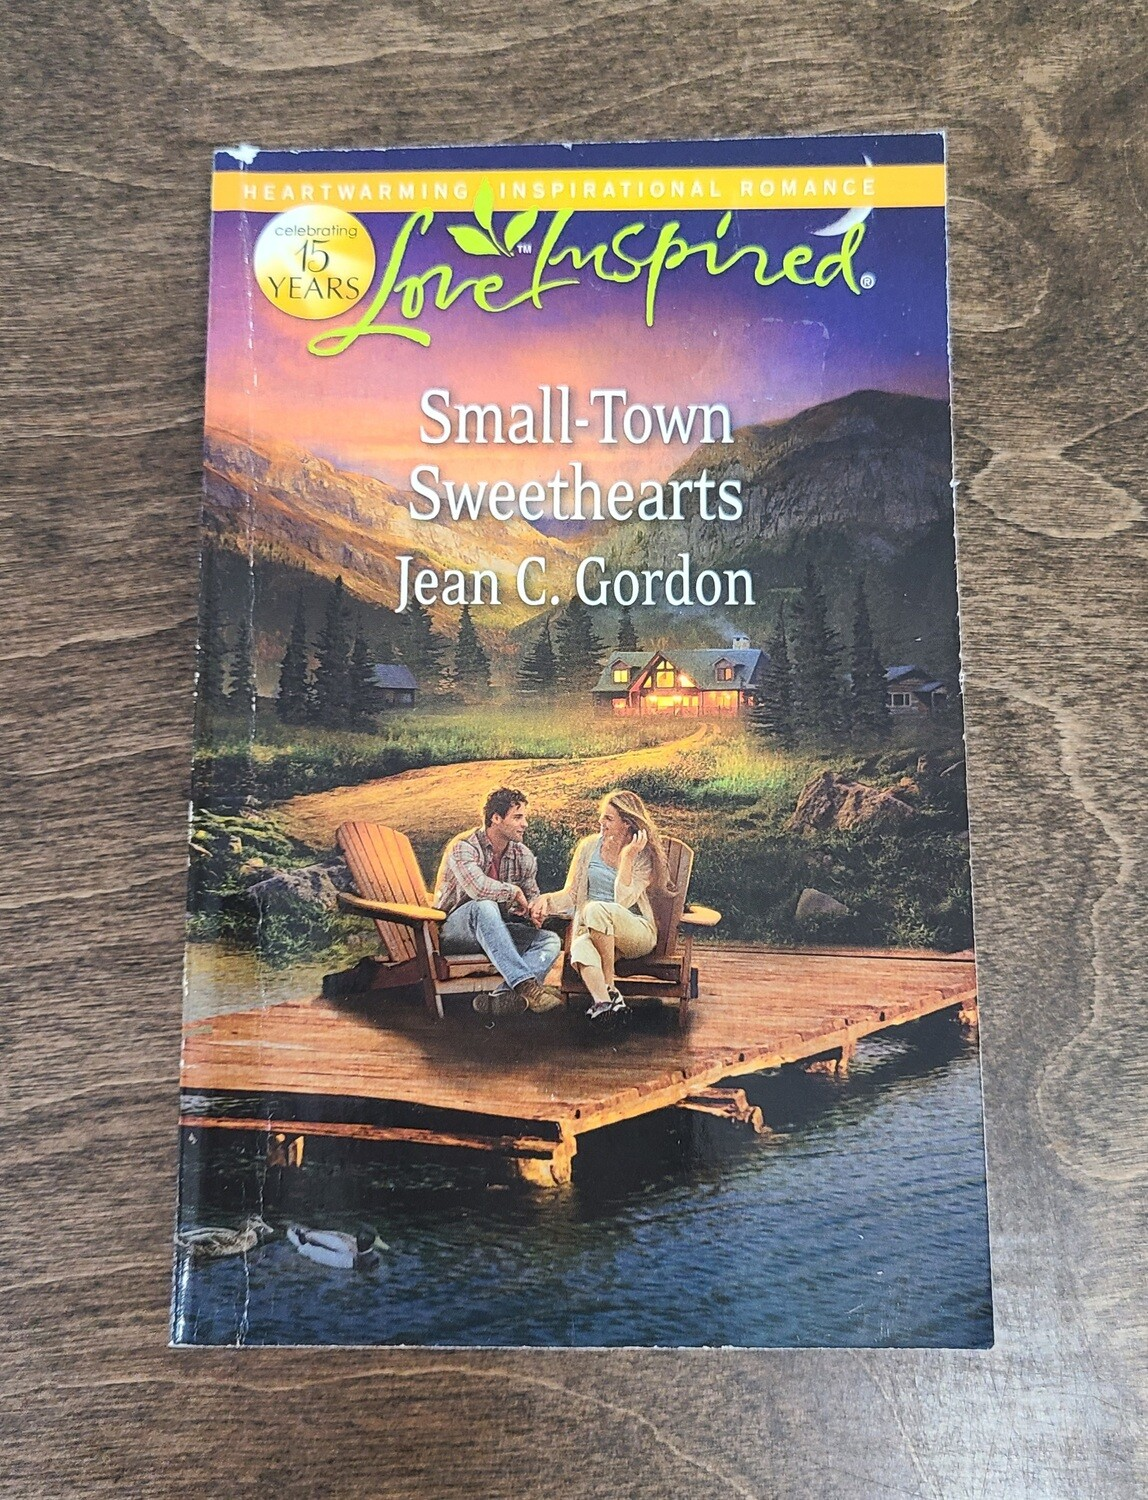 Small-Town Sweethearts by Jean C. Gordon